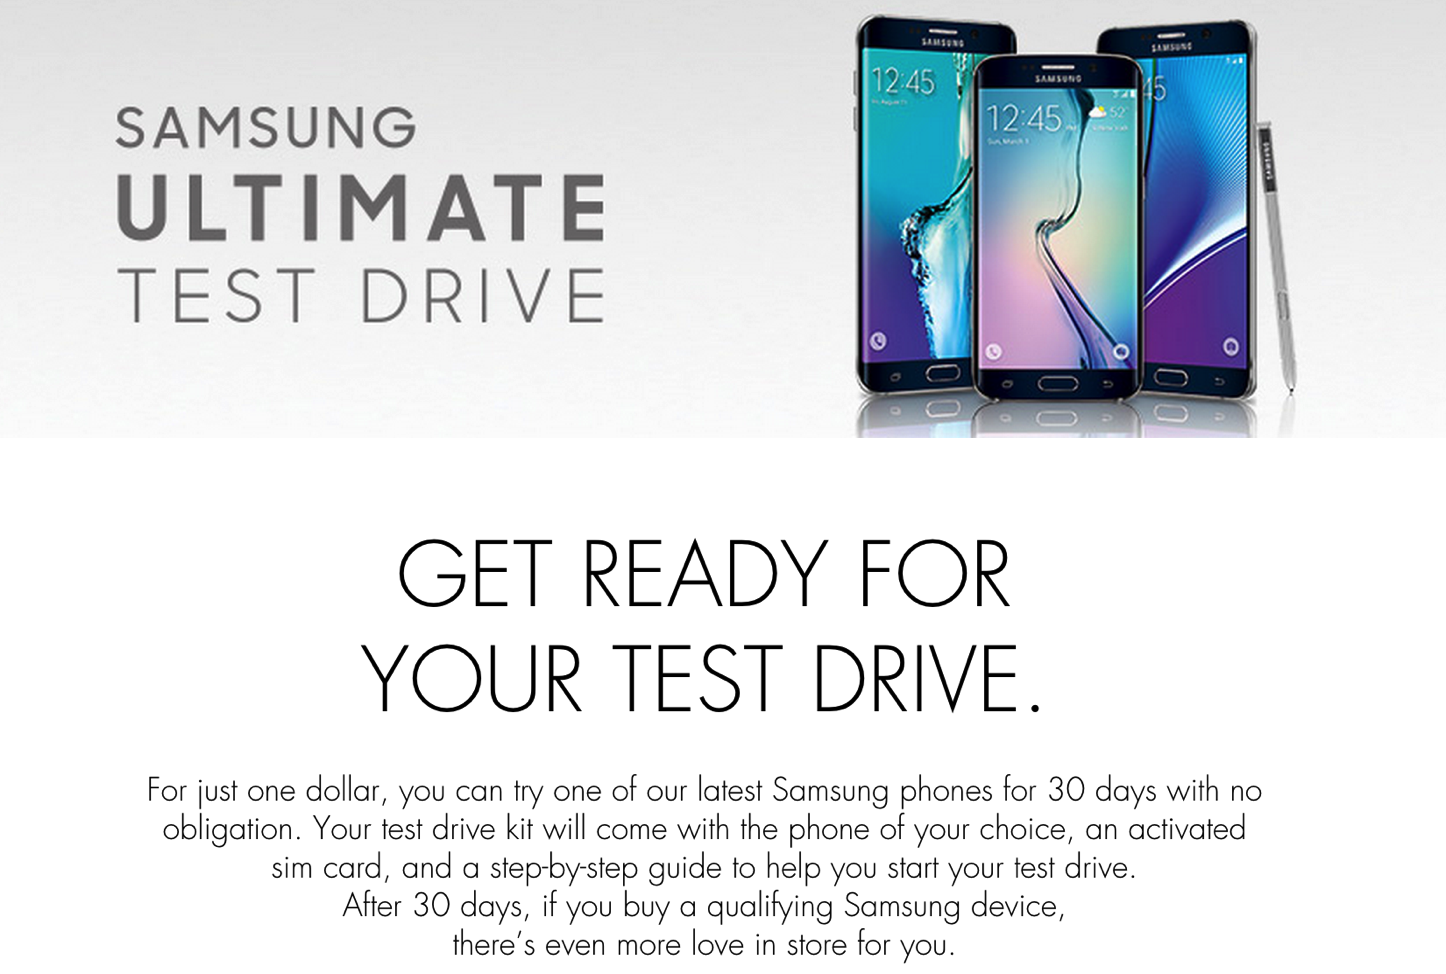 Samsung Ultimate Test Drive